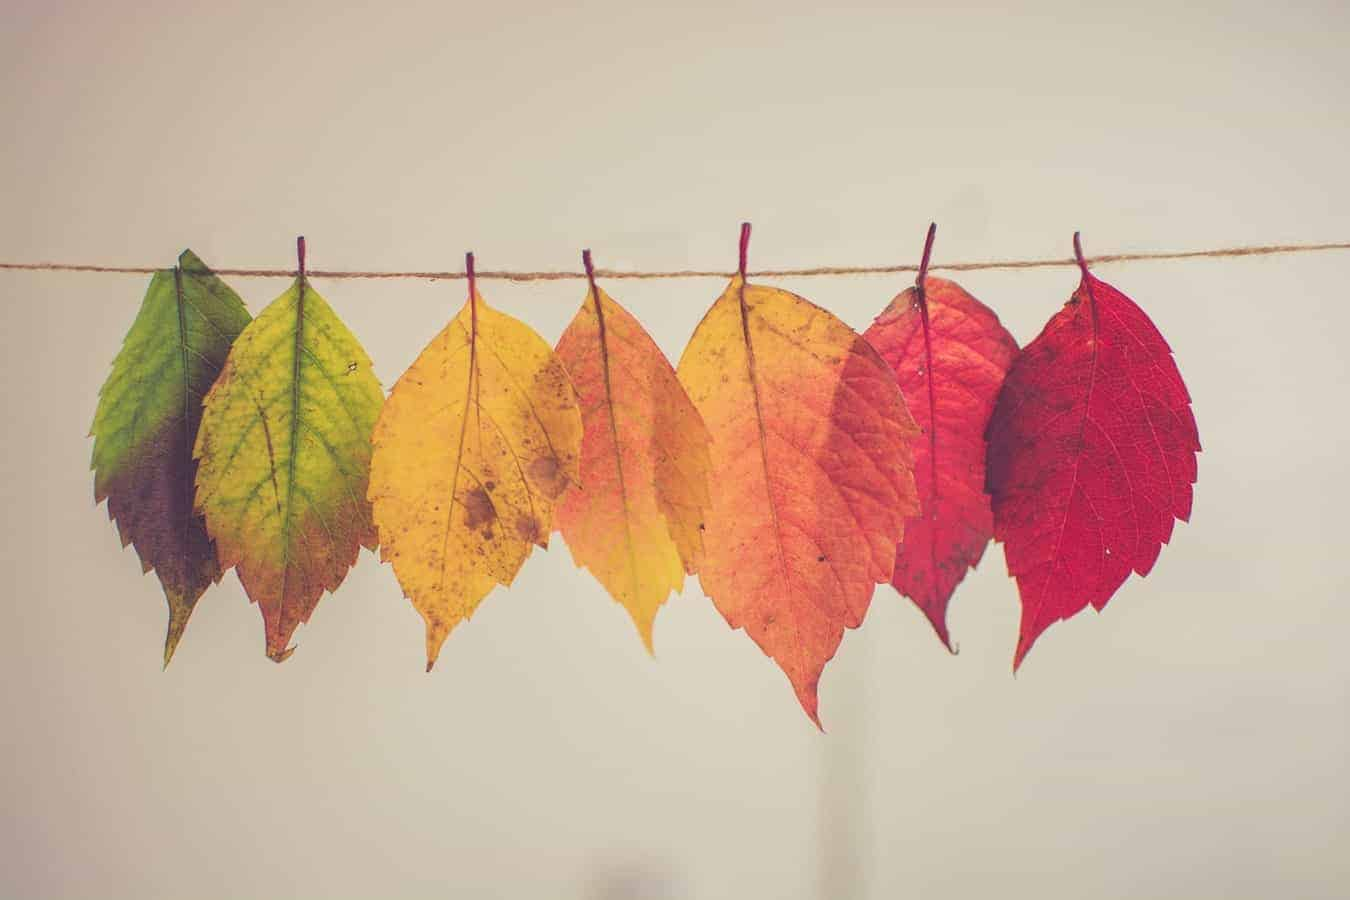 7 leaves, going from green to yellow to red, pegged to a thread